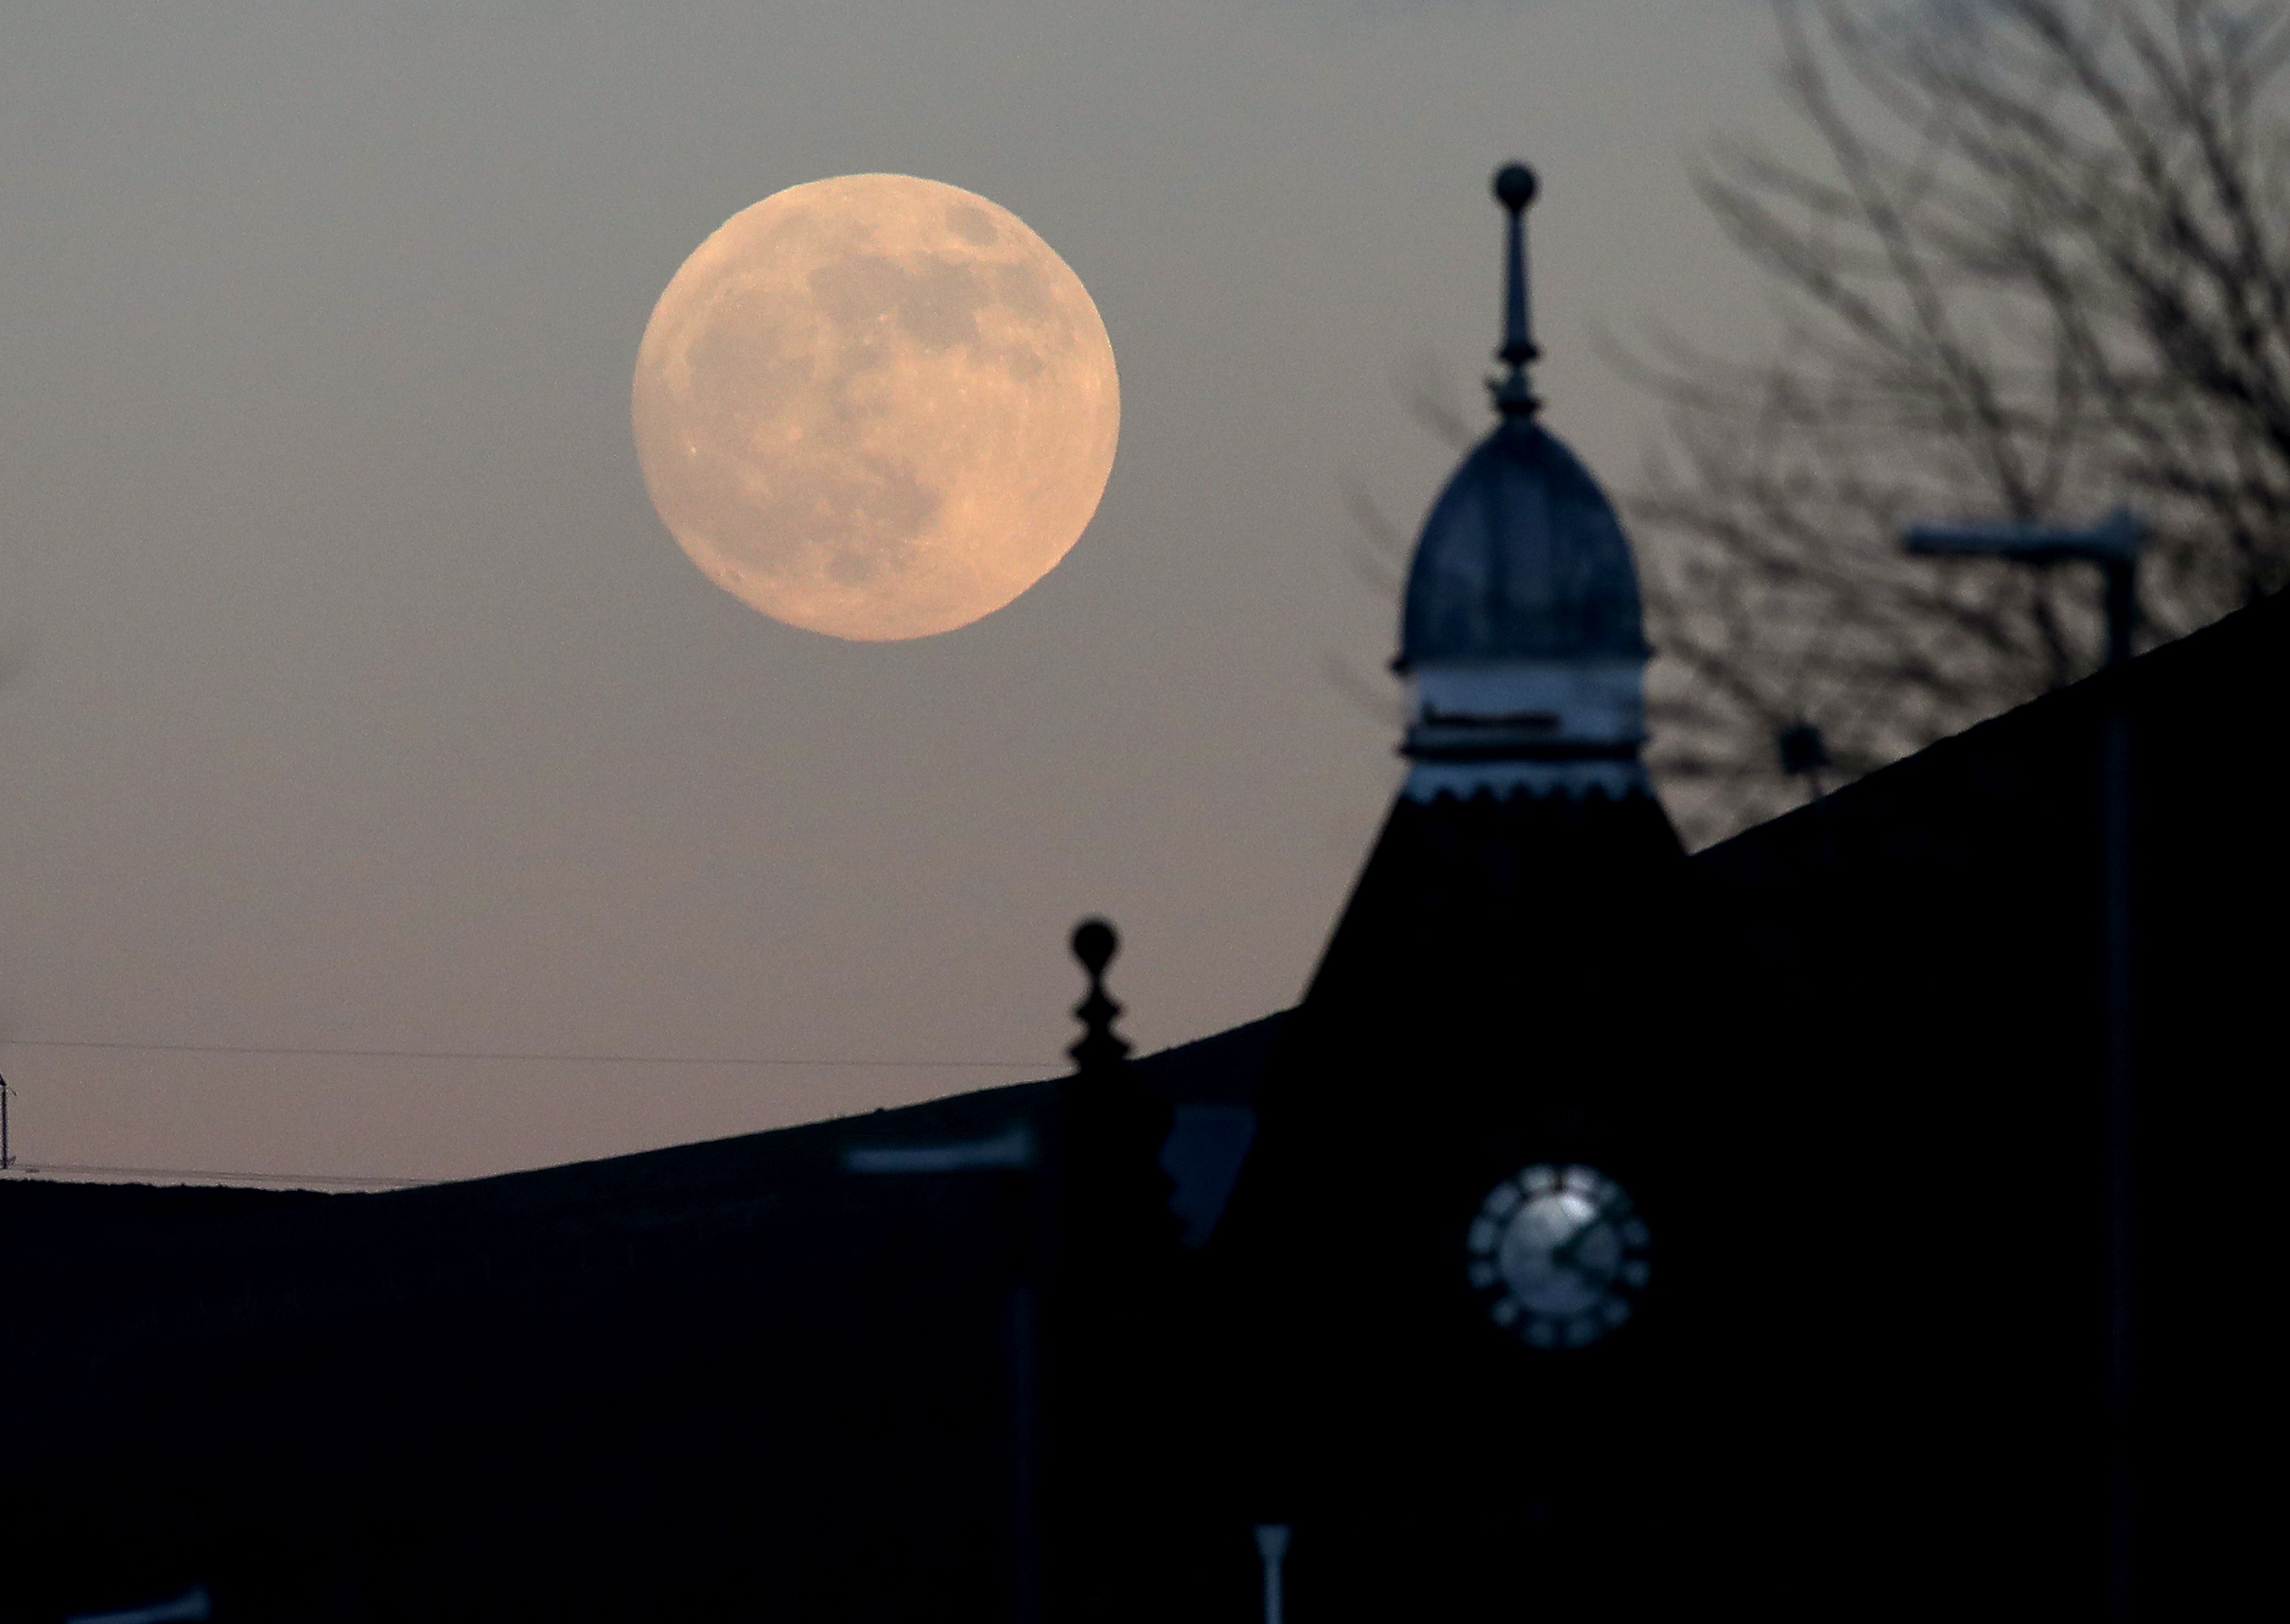 Second and largest supermoon of 2019 will shine above Canada tonight